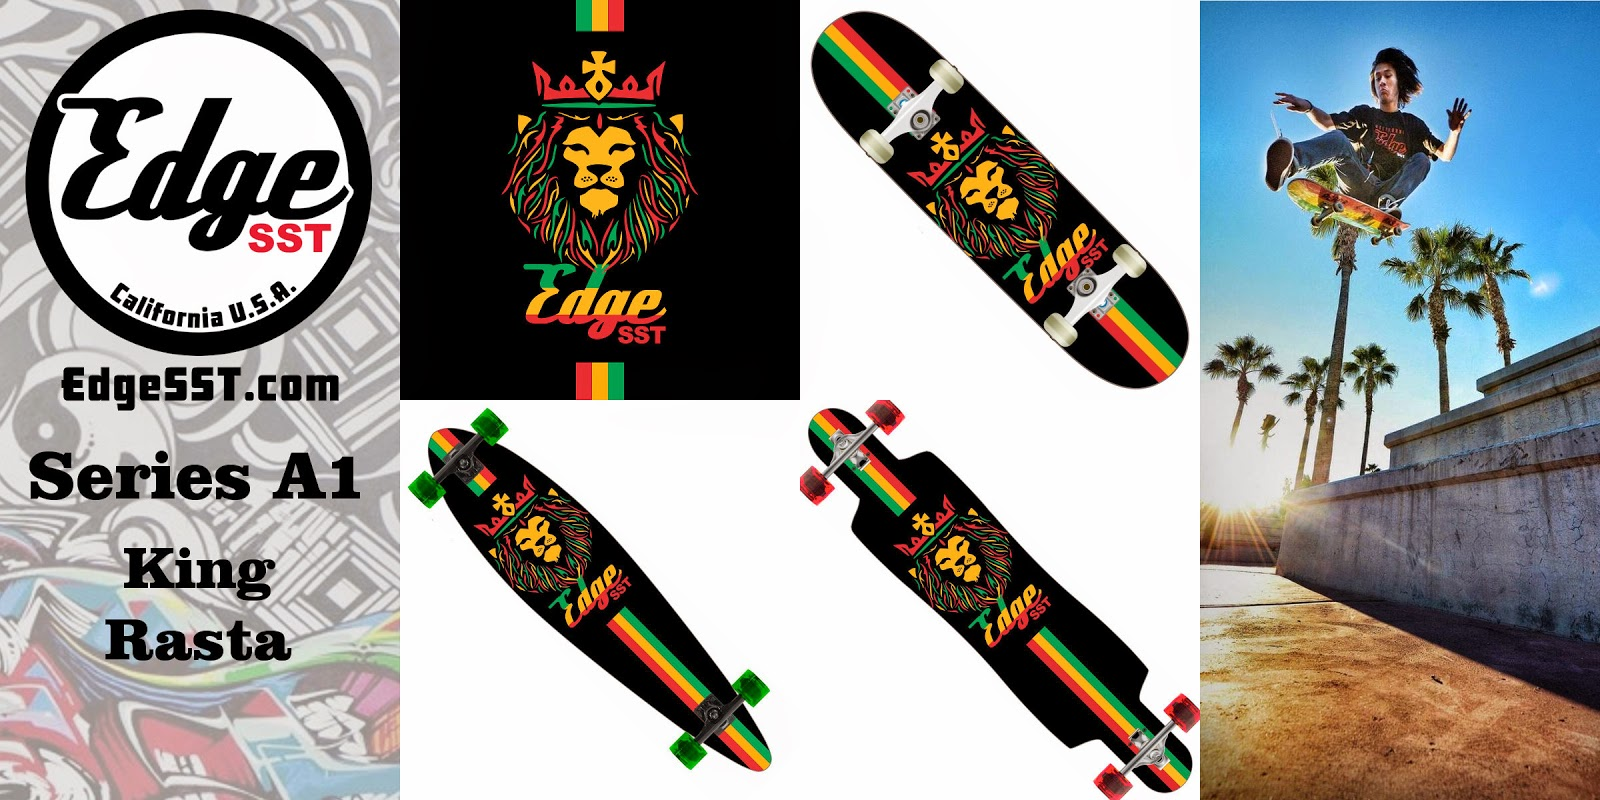 Edge SST Skateboard Series A1: King Rasta Skateboard